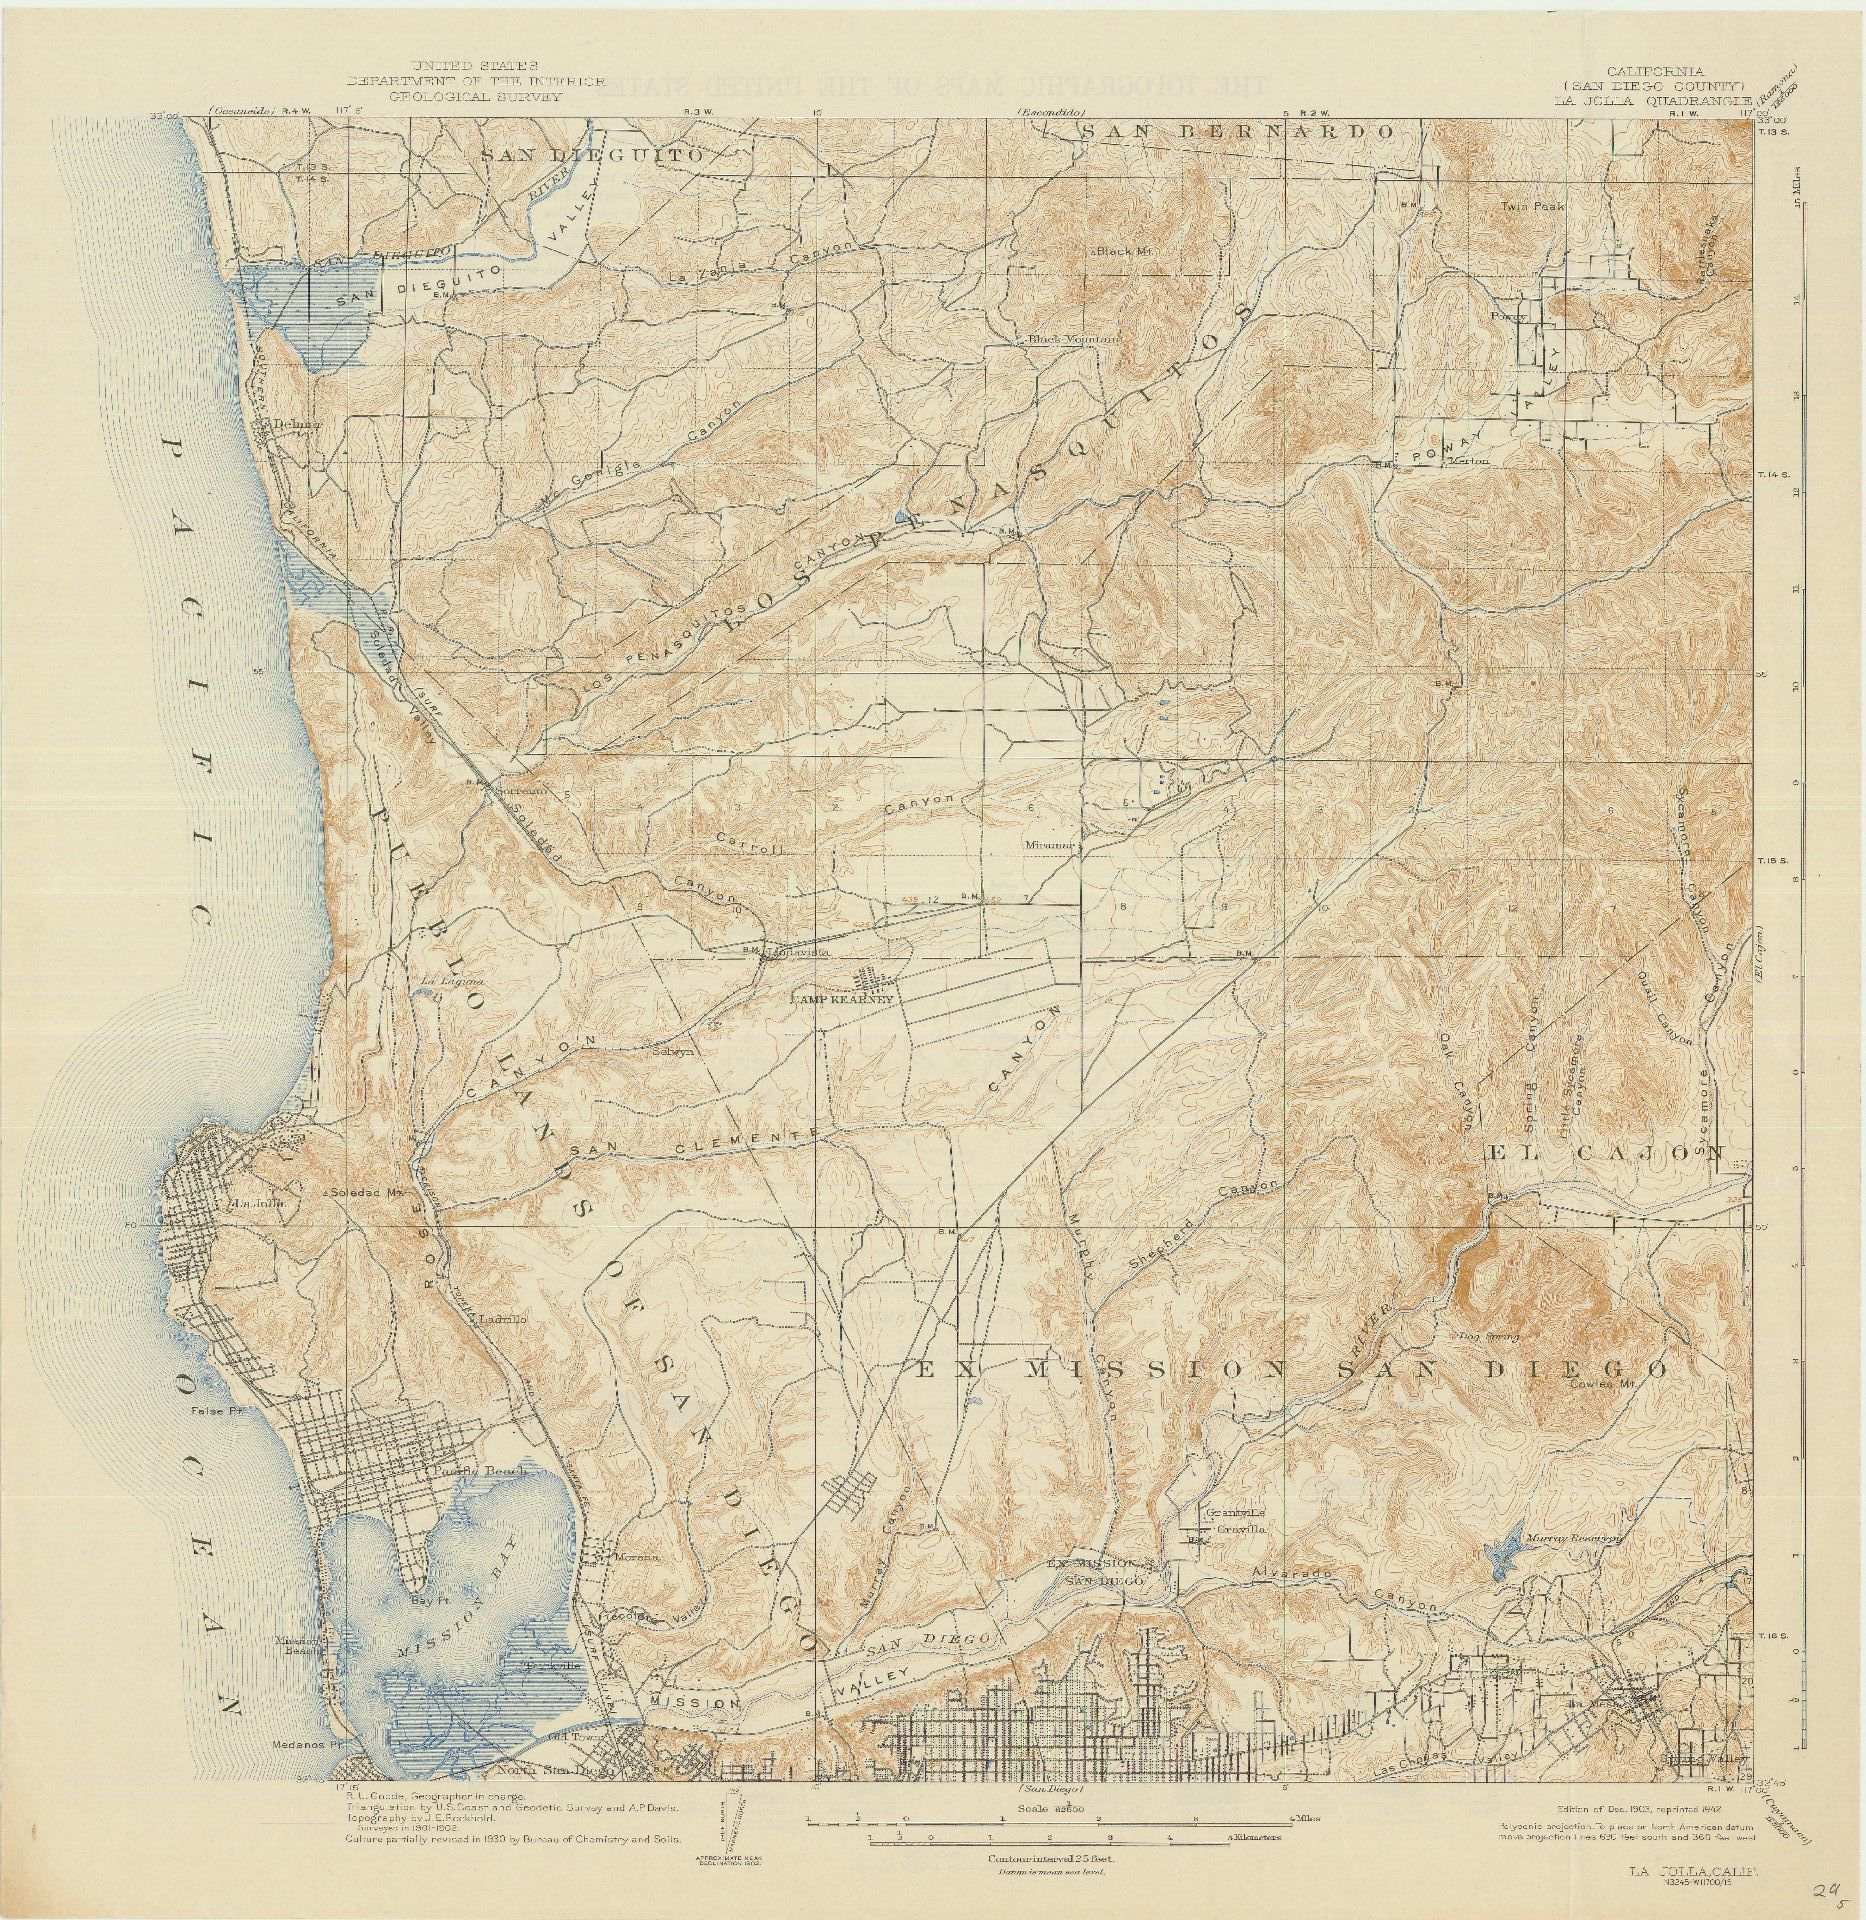 Topographic Map Of San Diego.Sdag Online Historical Topographic Maps San Diego County